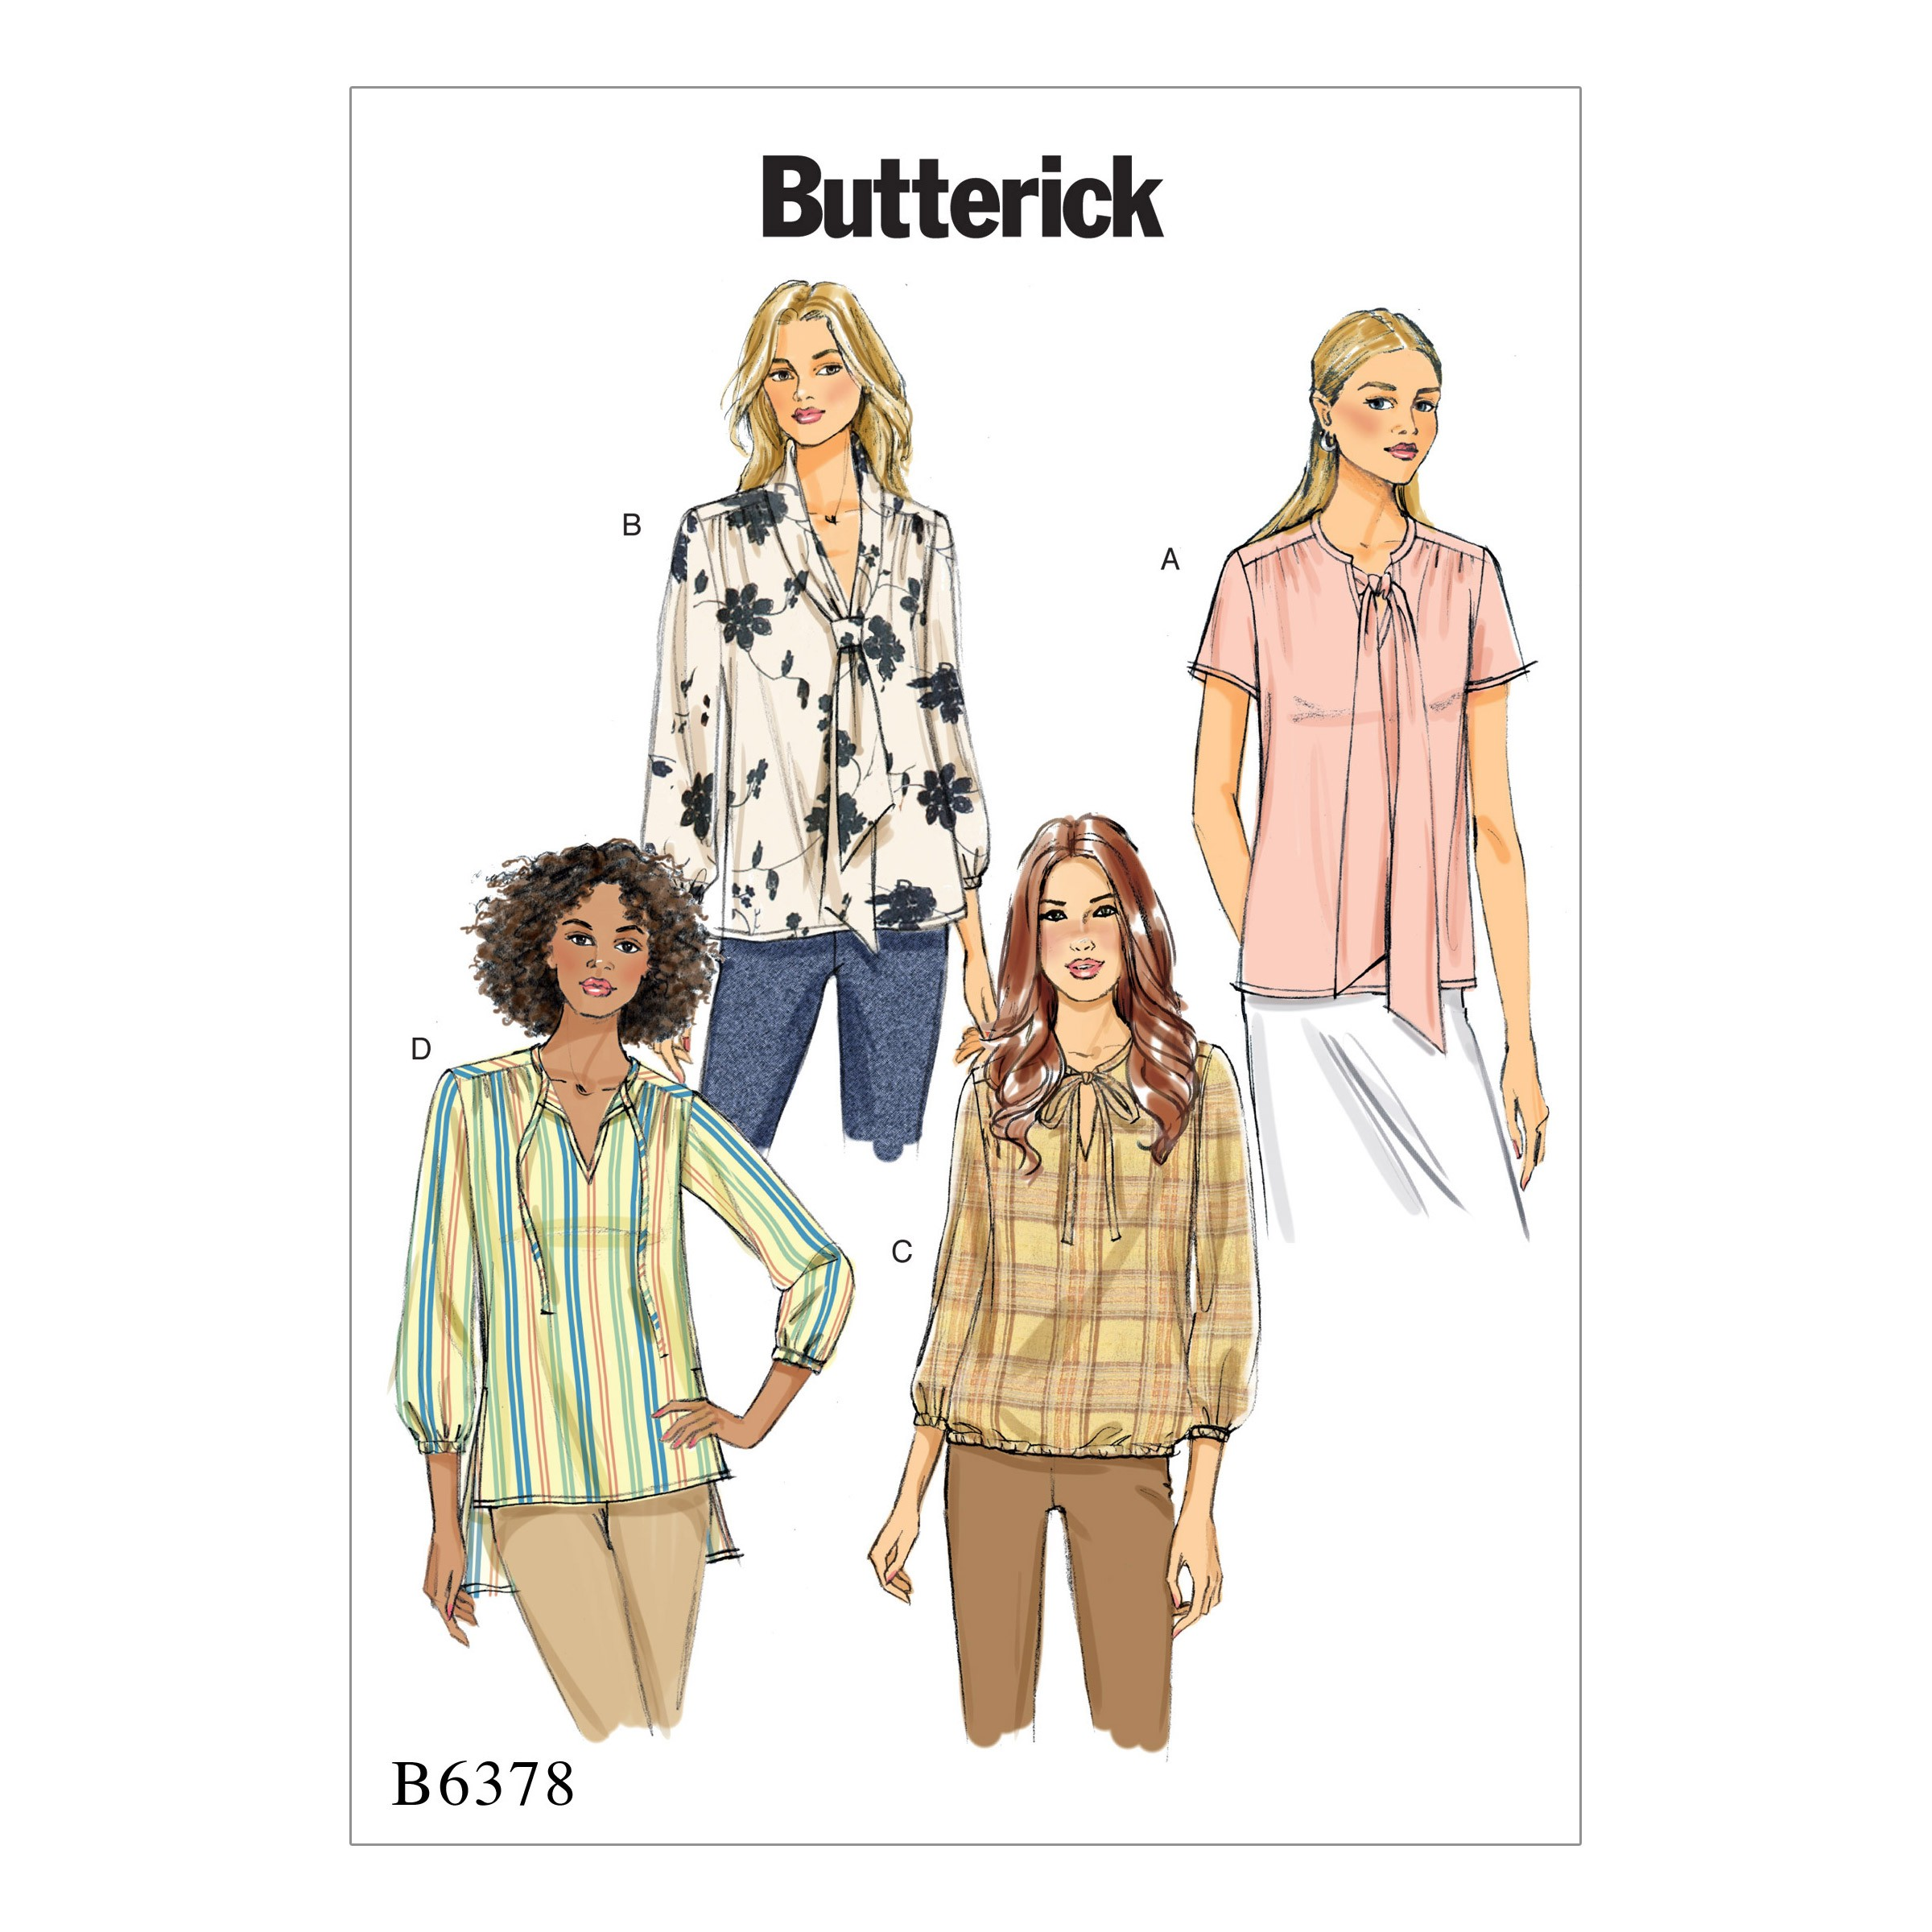 Butterick Sewing Pattern 6378 Misses' Gathered Tops & Tunics With Neck Ties